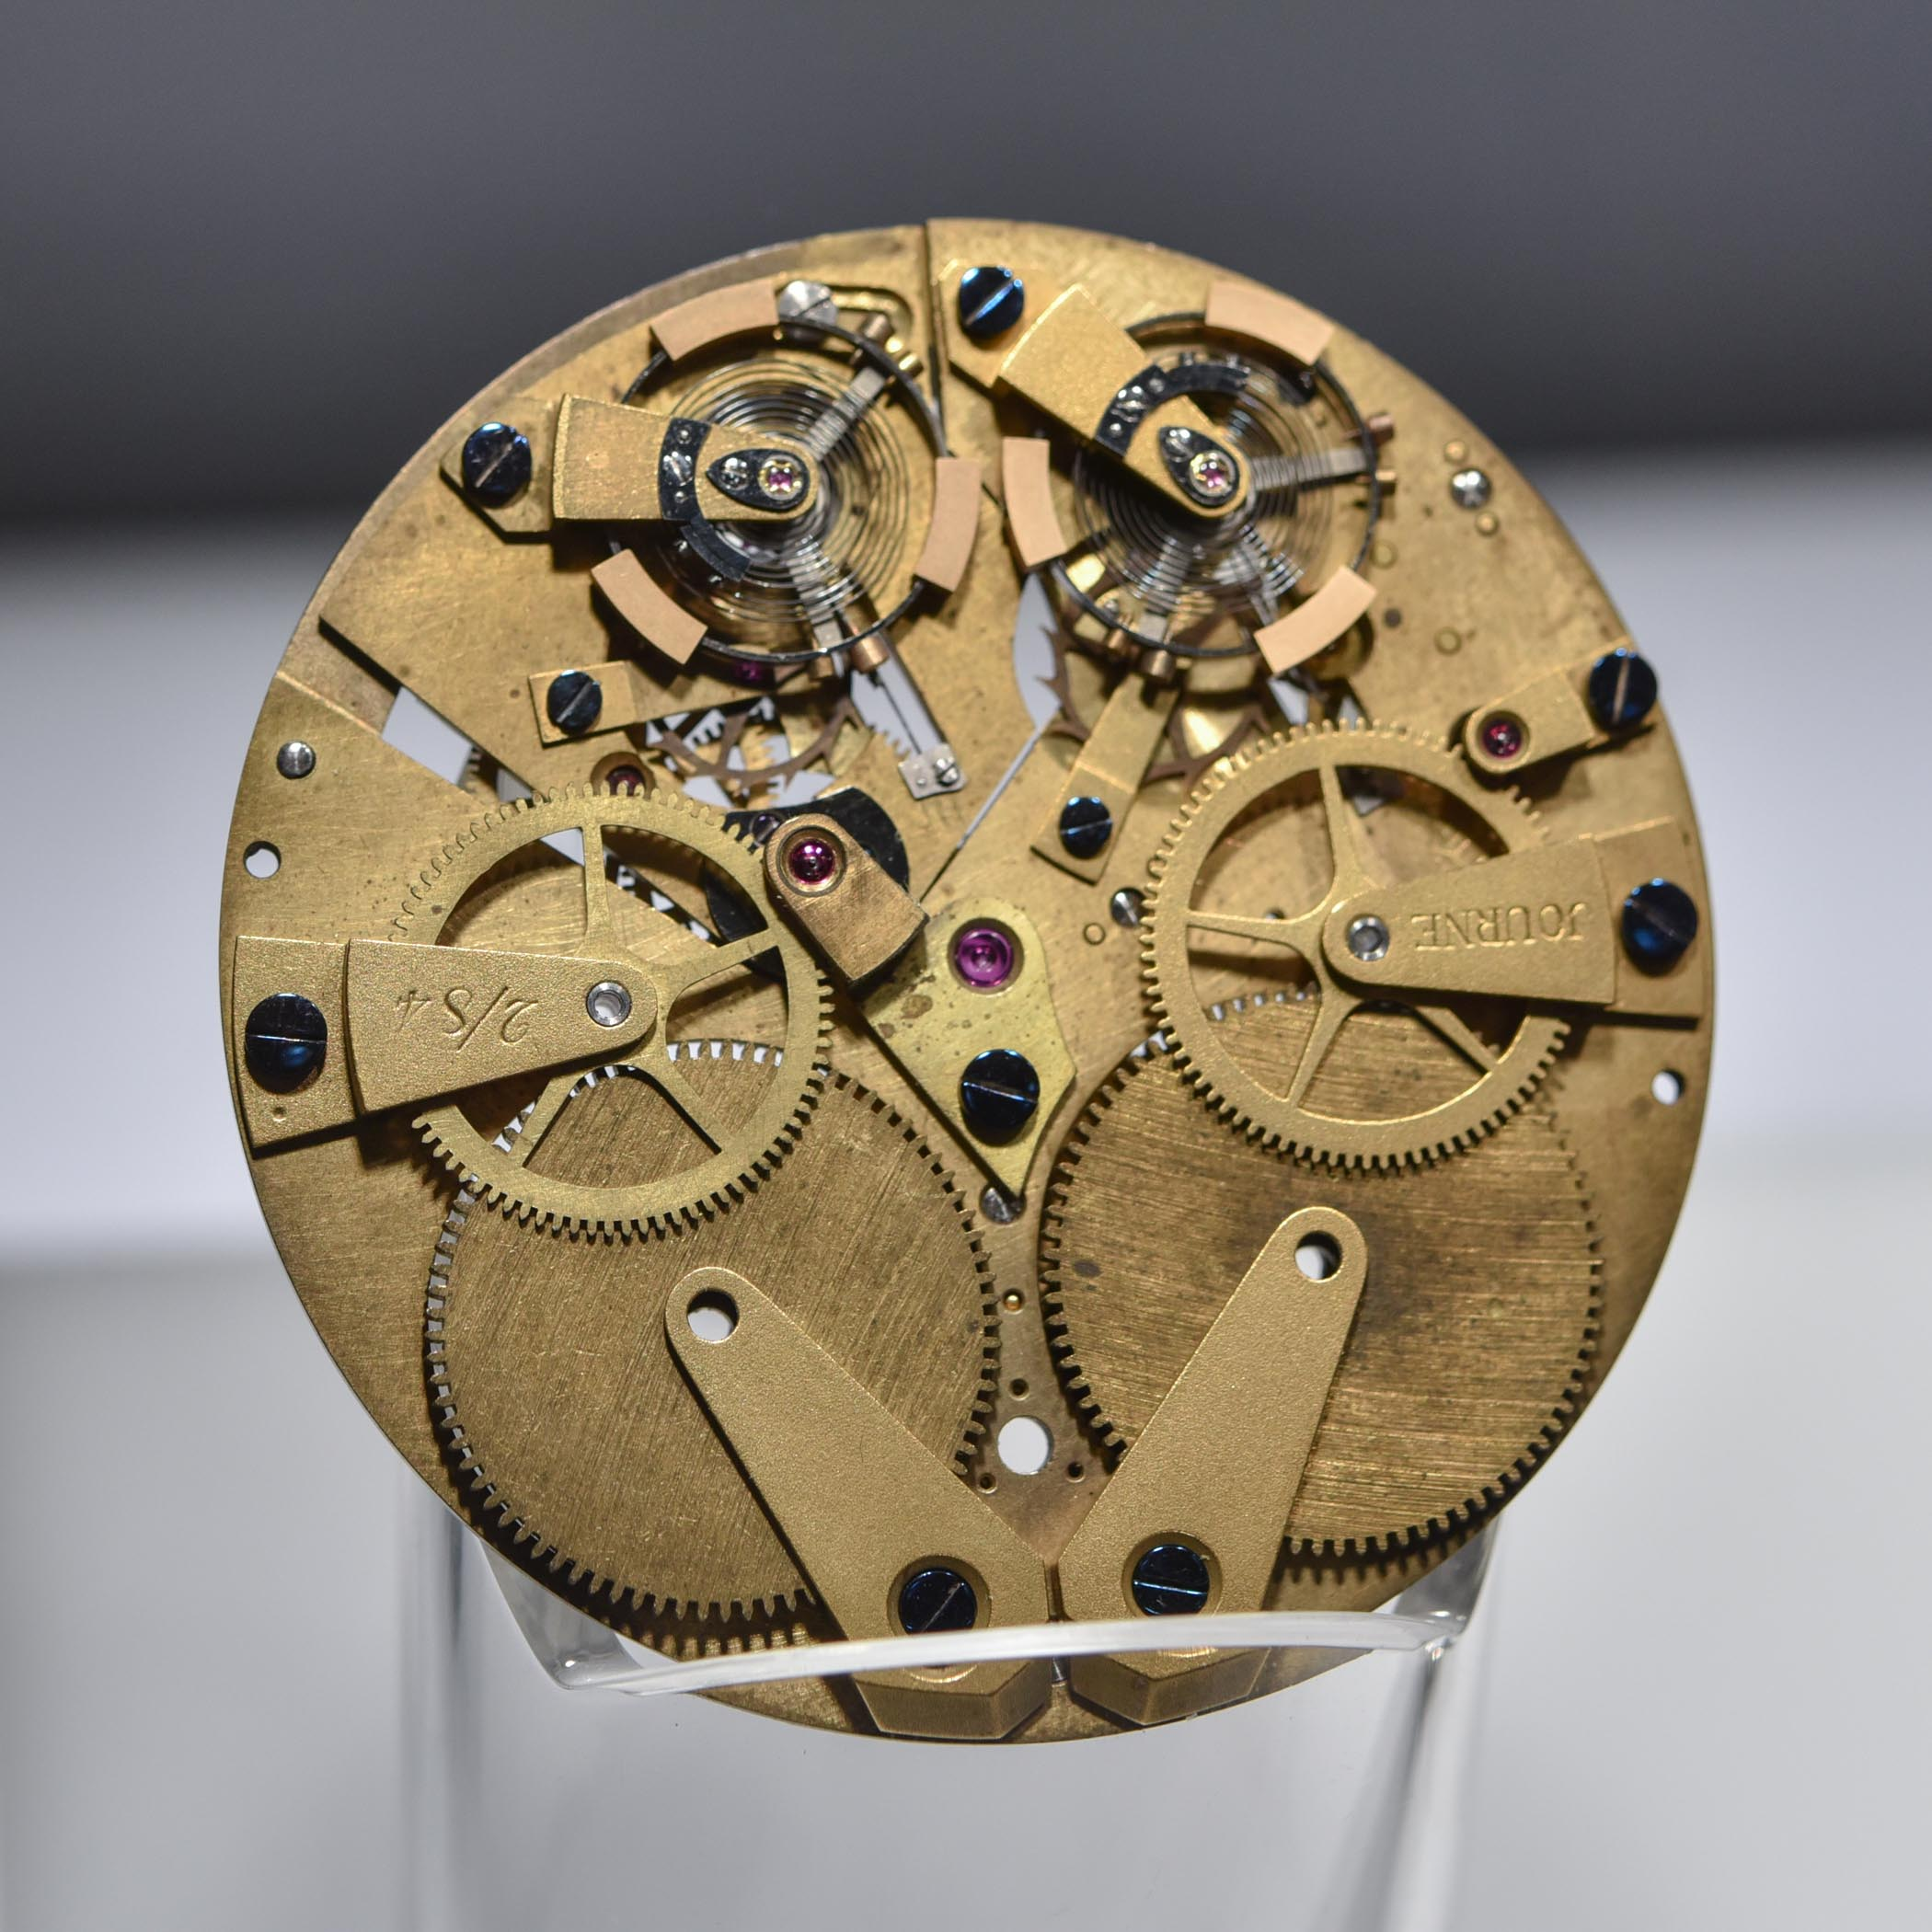 F.P. Journe Chronometre a Resonance prototype